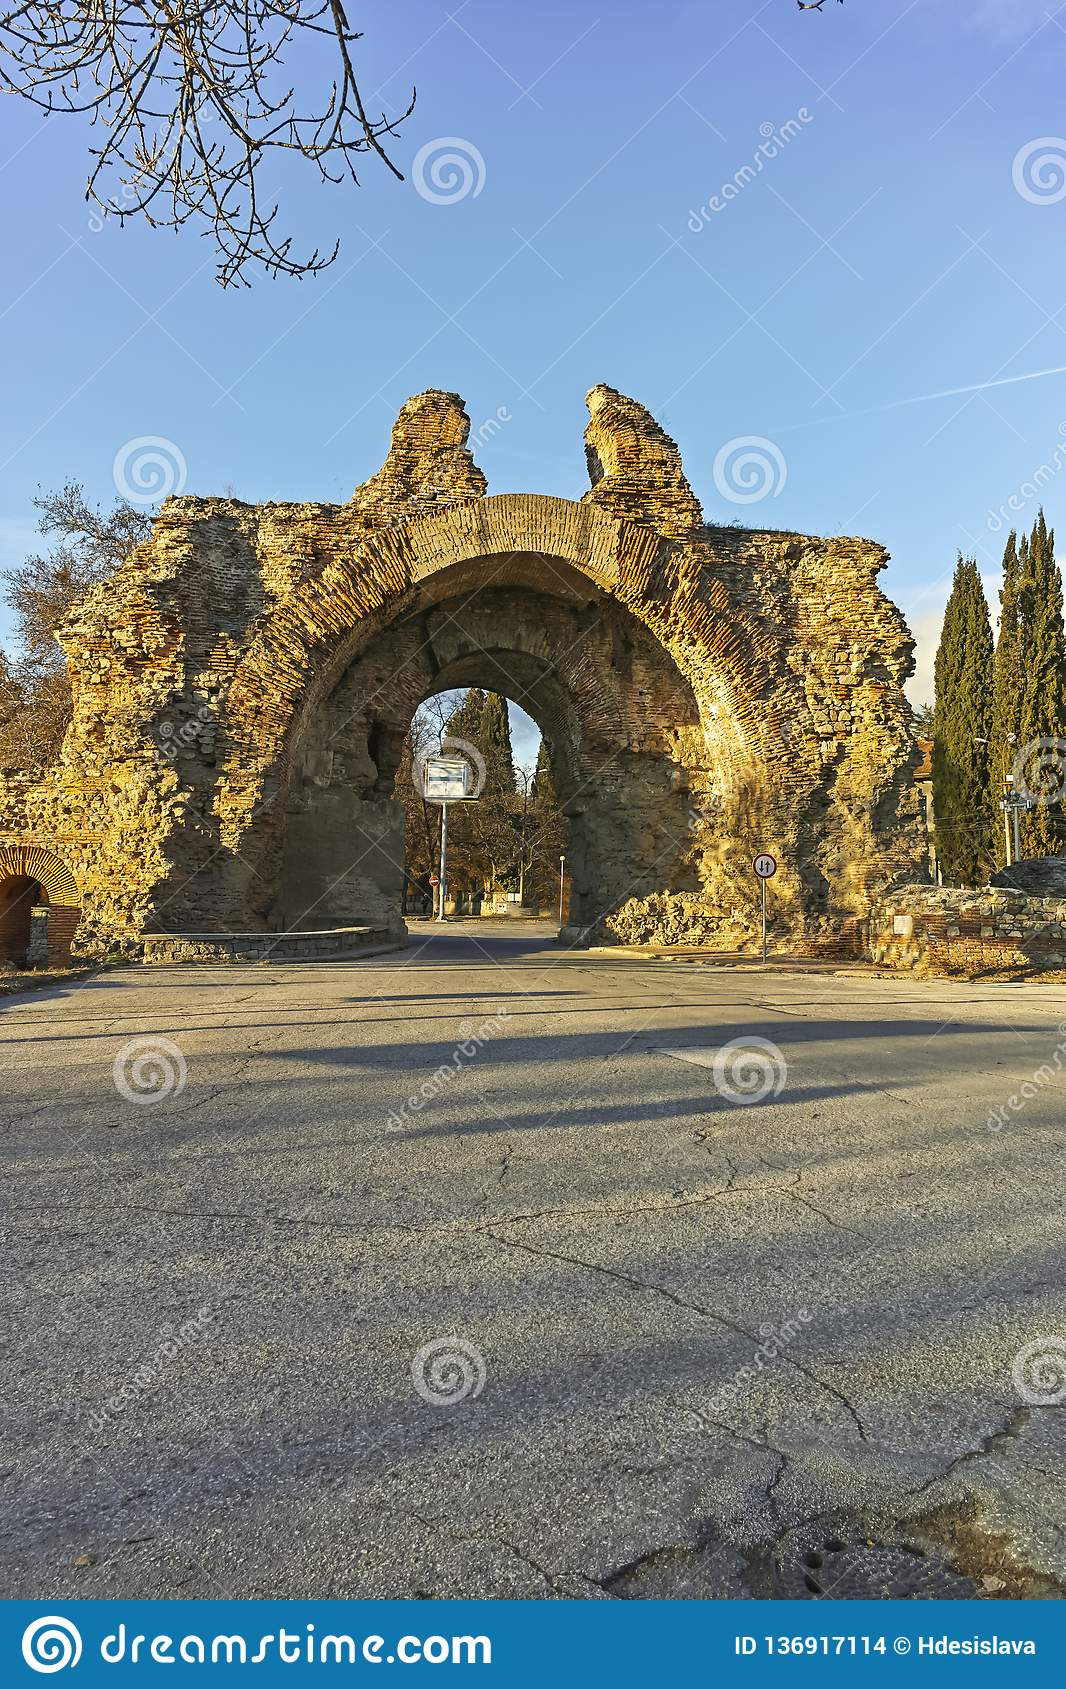 City Of South Gate >> The South Gate The Camels At Roman Fortifications In